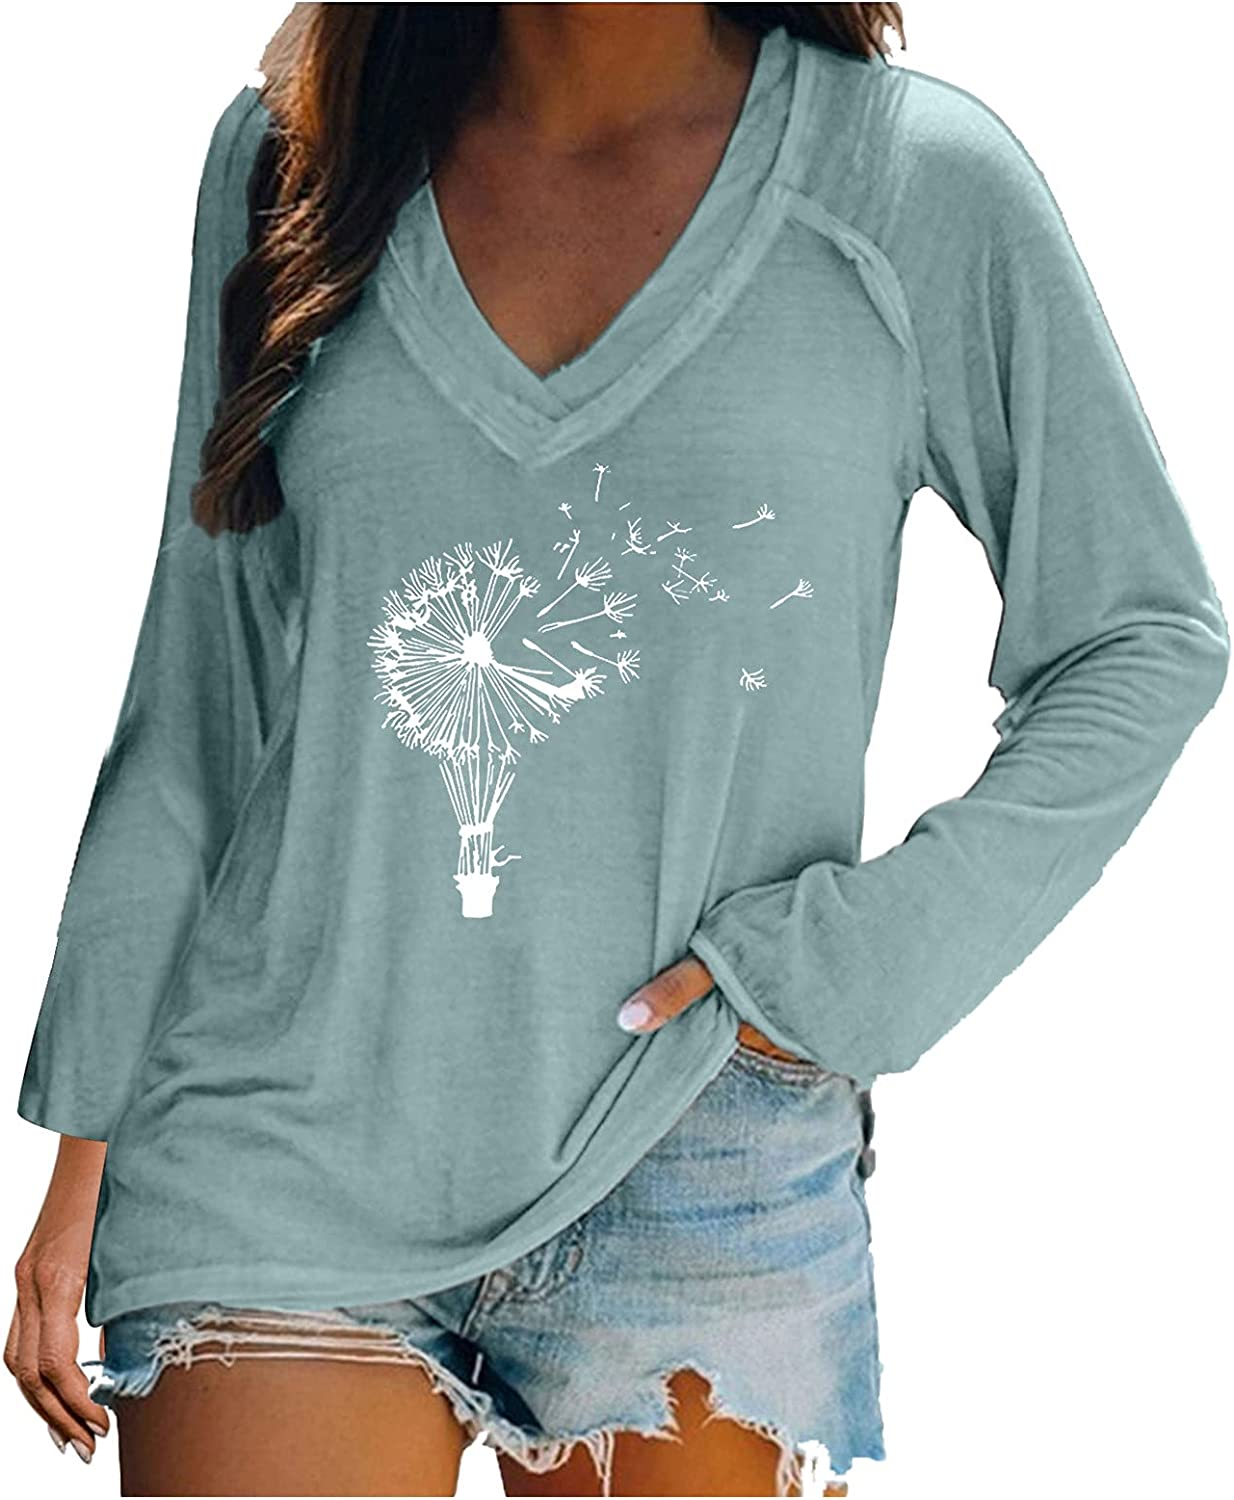 Women Fashion Casual V Neck Long Sleeve Casual Printed Sexy T-Shirt Blouse Tops